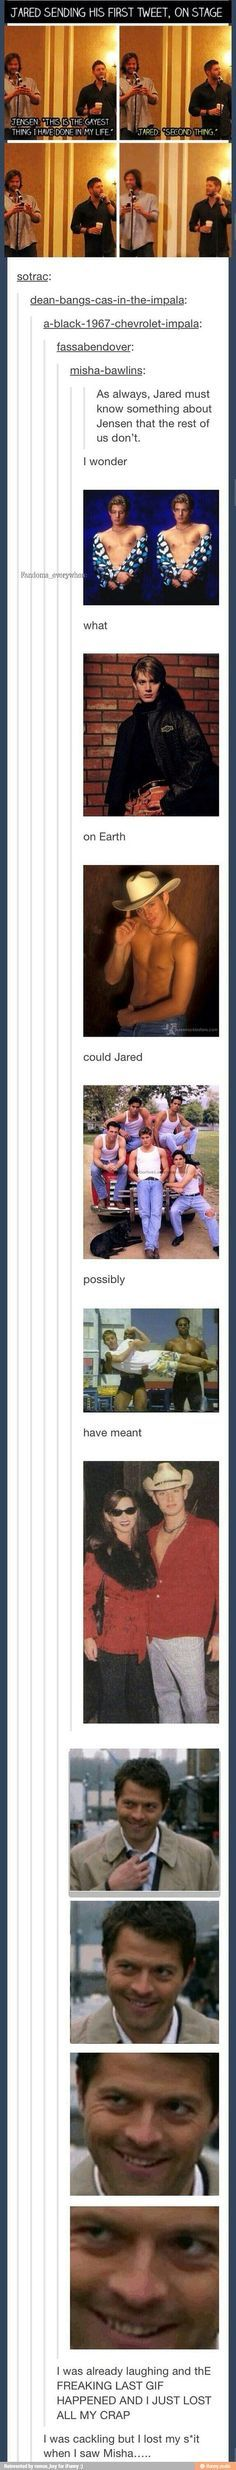 Funny as hell, then MISHA! OMGs, I hurt myself laughing at that last image. Too much!